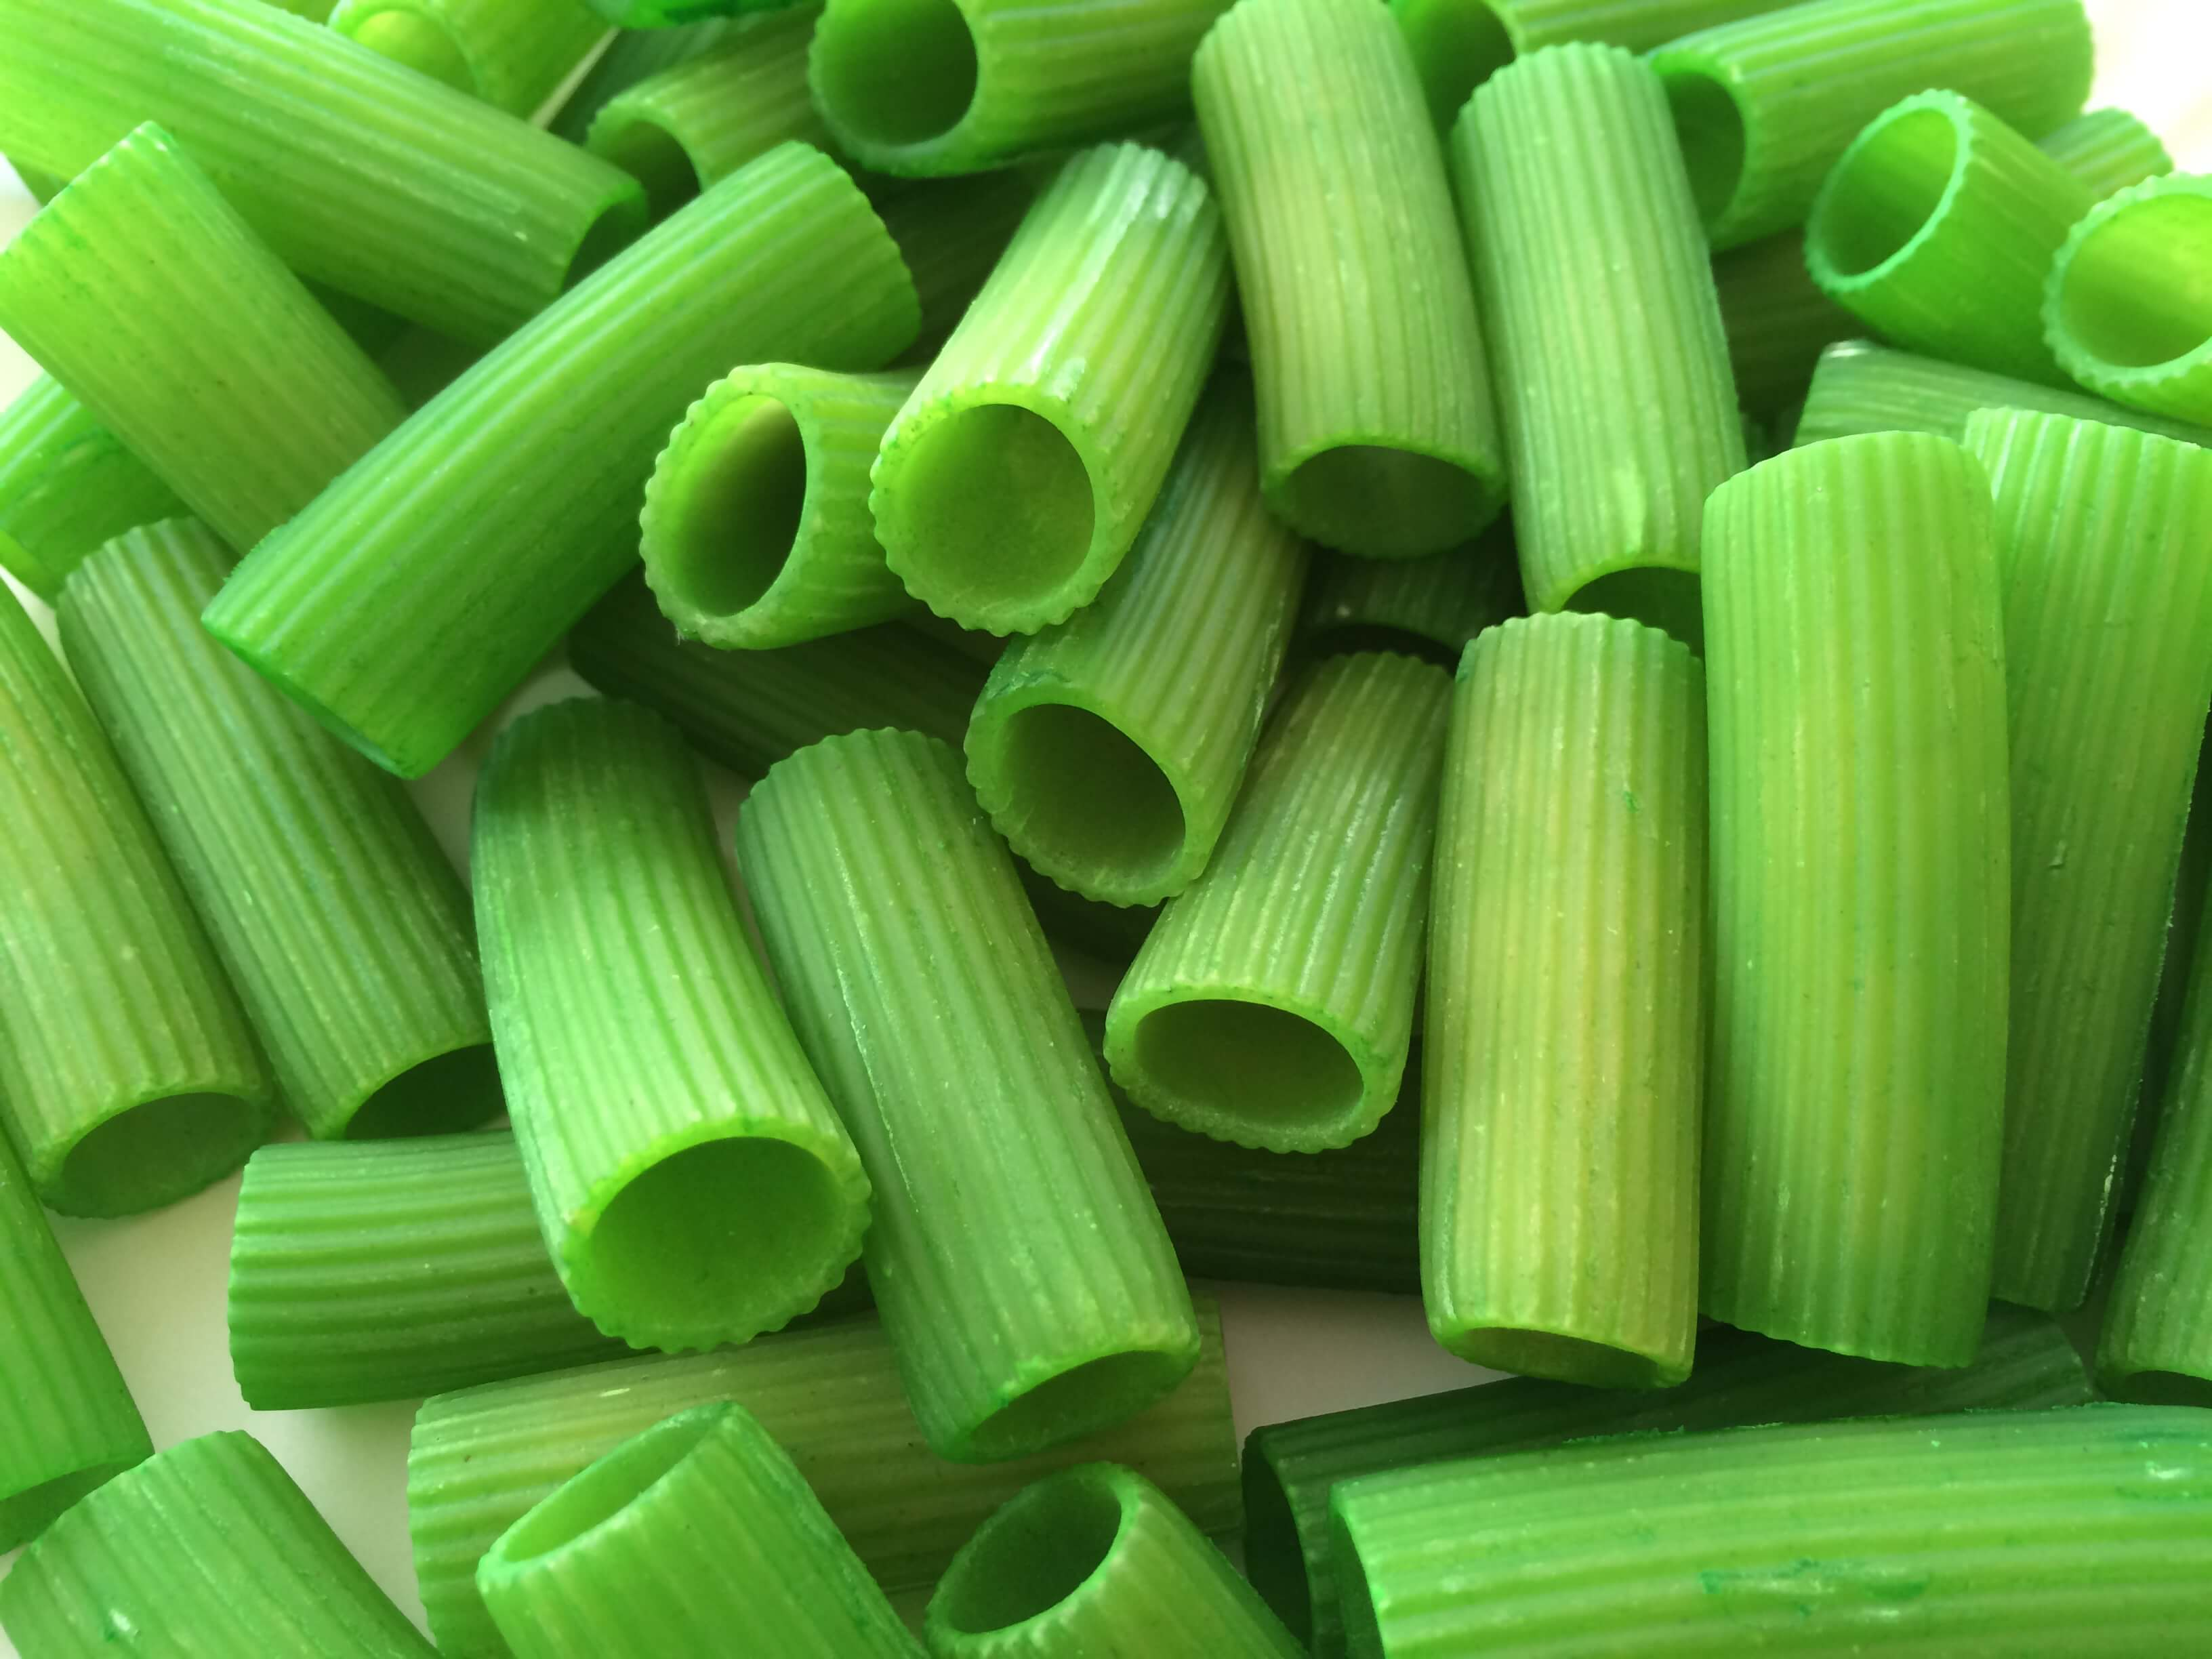 dyed green pasta for st patrick's day necklaces